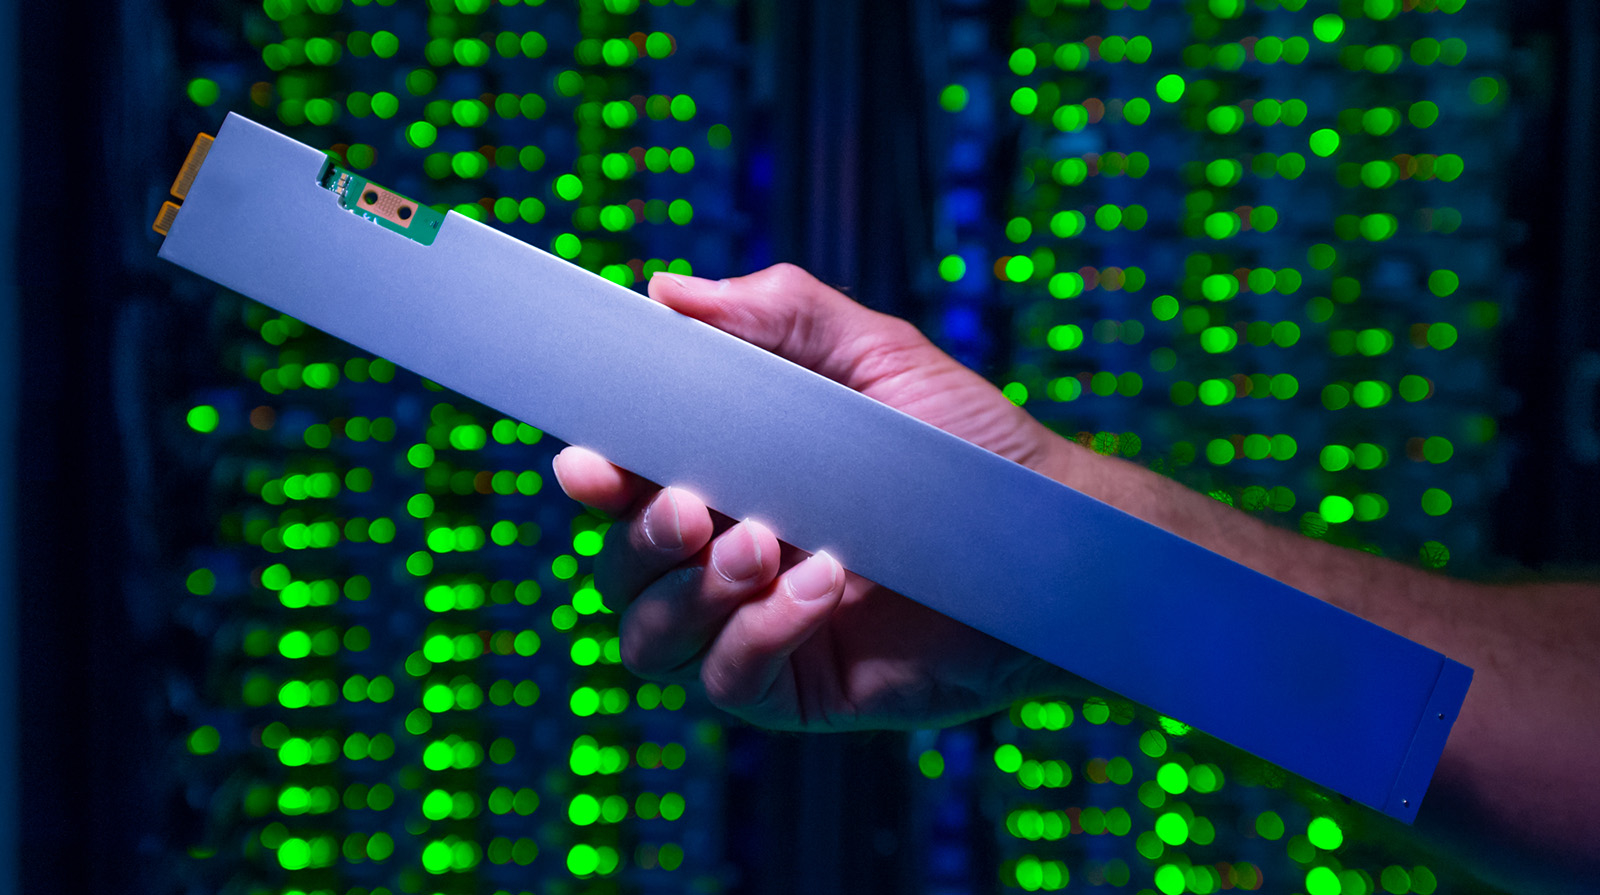 The ruler-shaped Intel SSD DC P4500 can hold up to 32 terabytes. It draws just one-tenth the power of a traditional spinning hard drive. (Credit: Walden Kirsch/Intel Corporation)